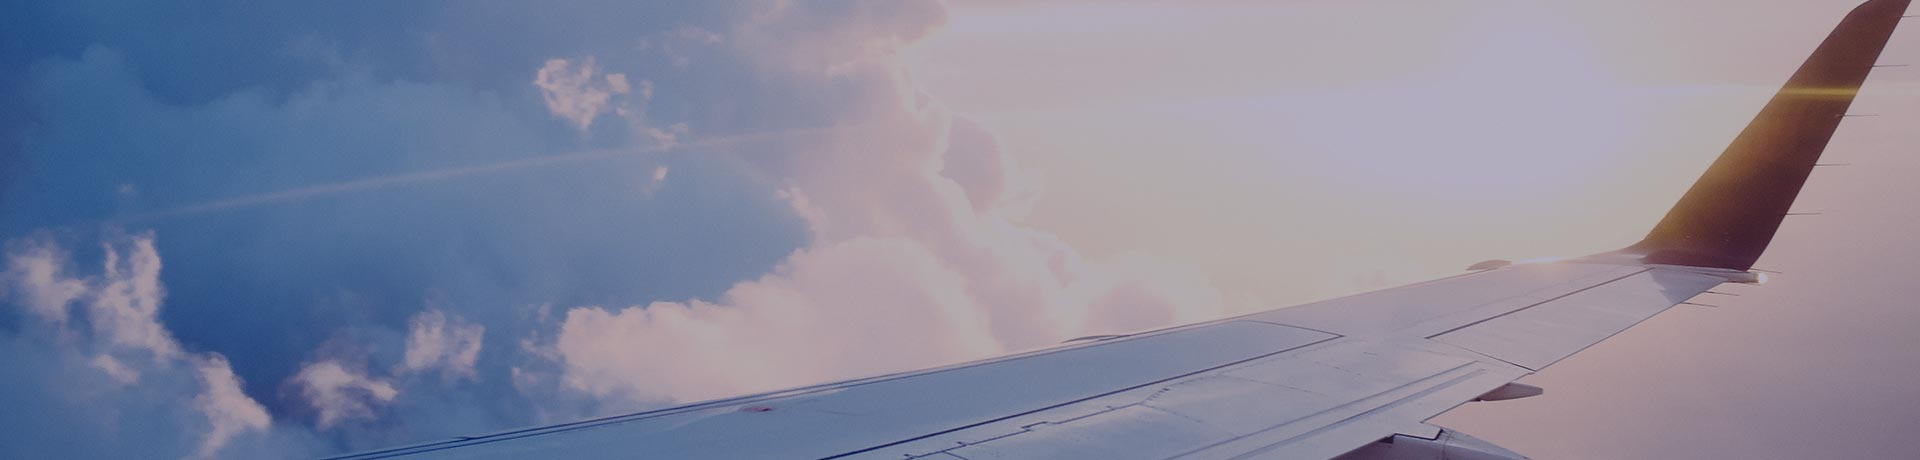 An aircraft wing in the sky with clouds in the background